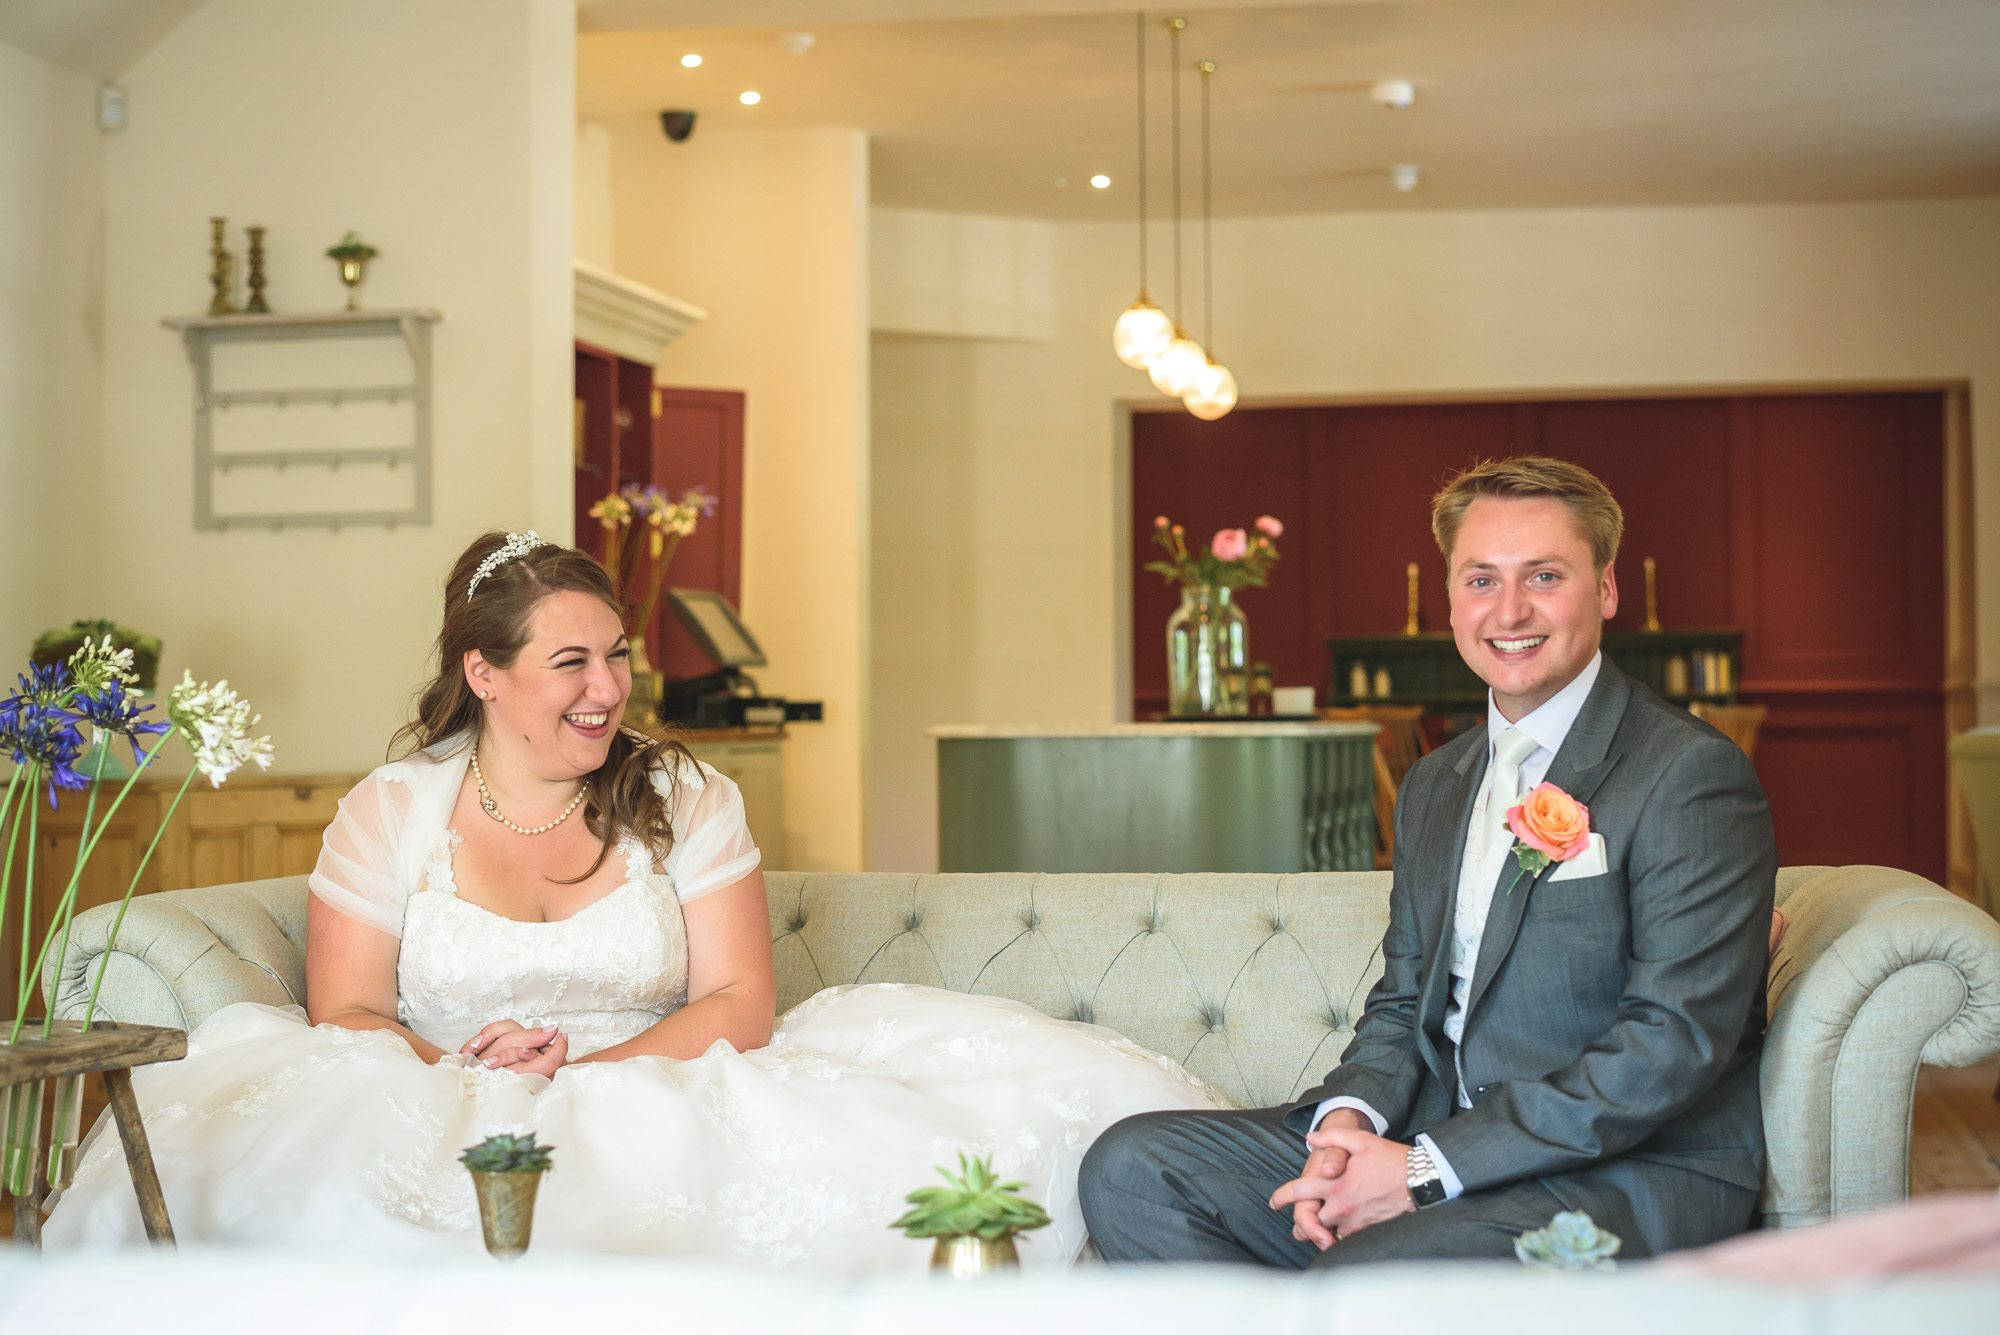 Lauren and Lee - Millbridge Court wedding photography (113 of 166)